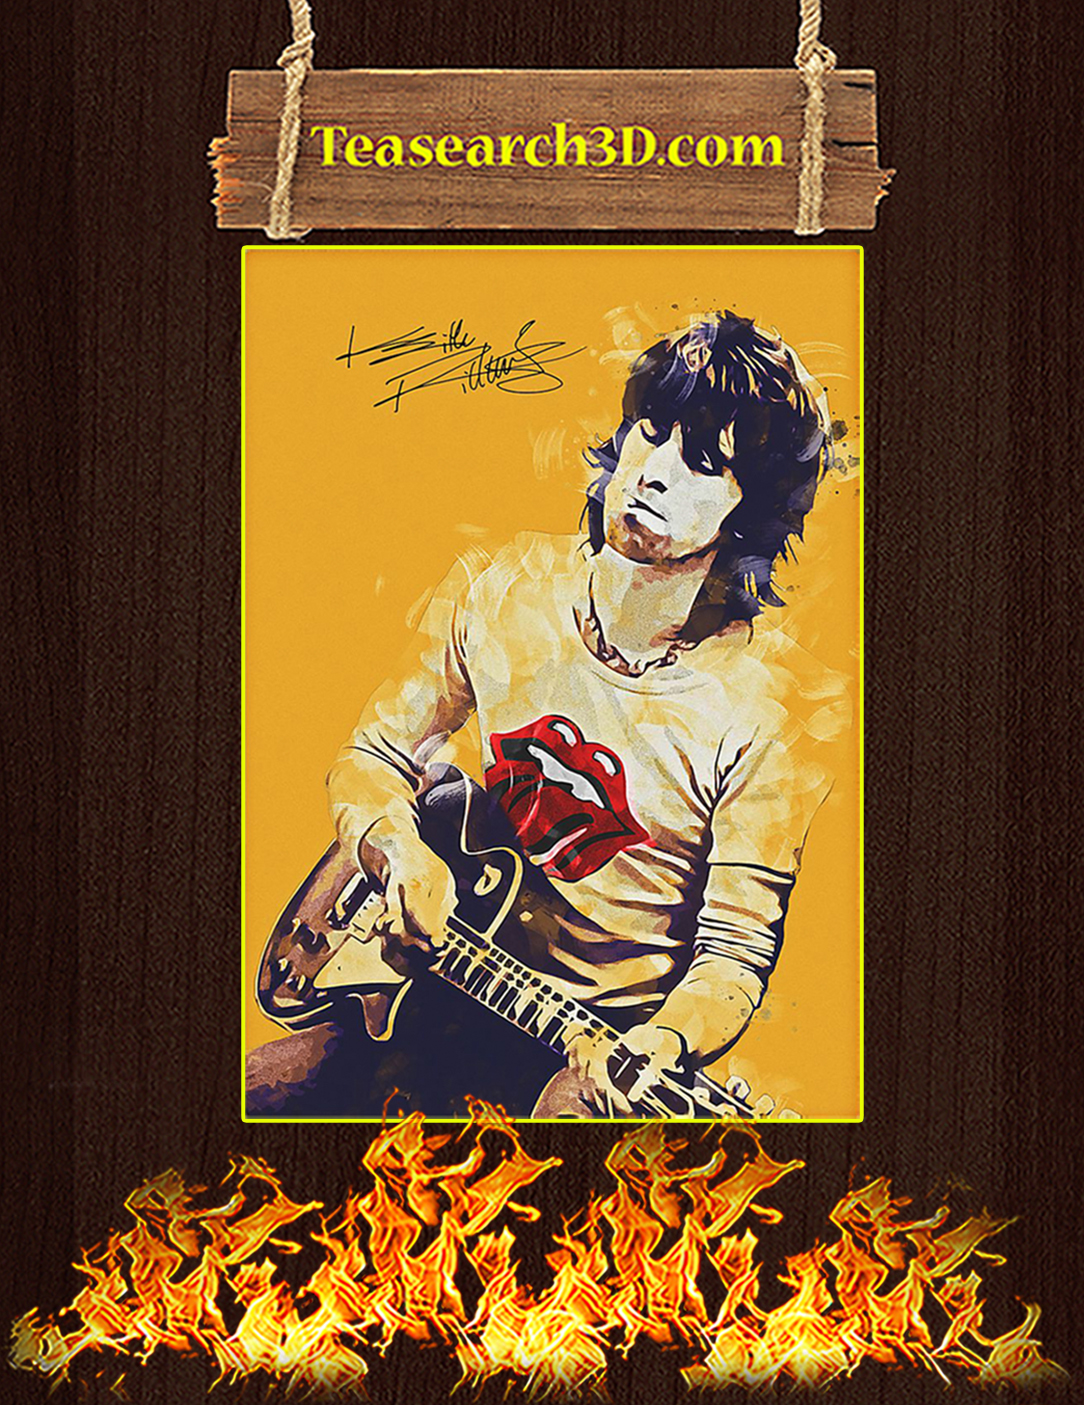 Legend keith richards signature poster A2